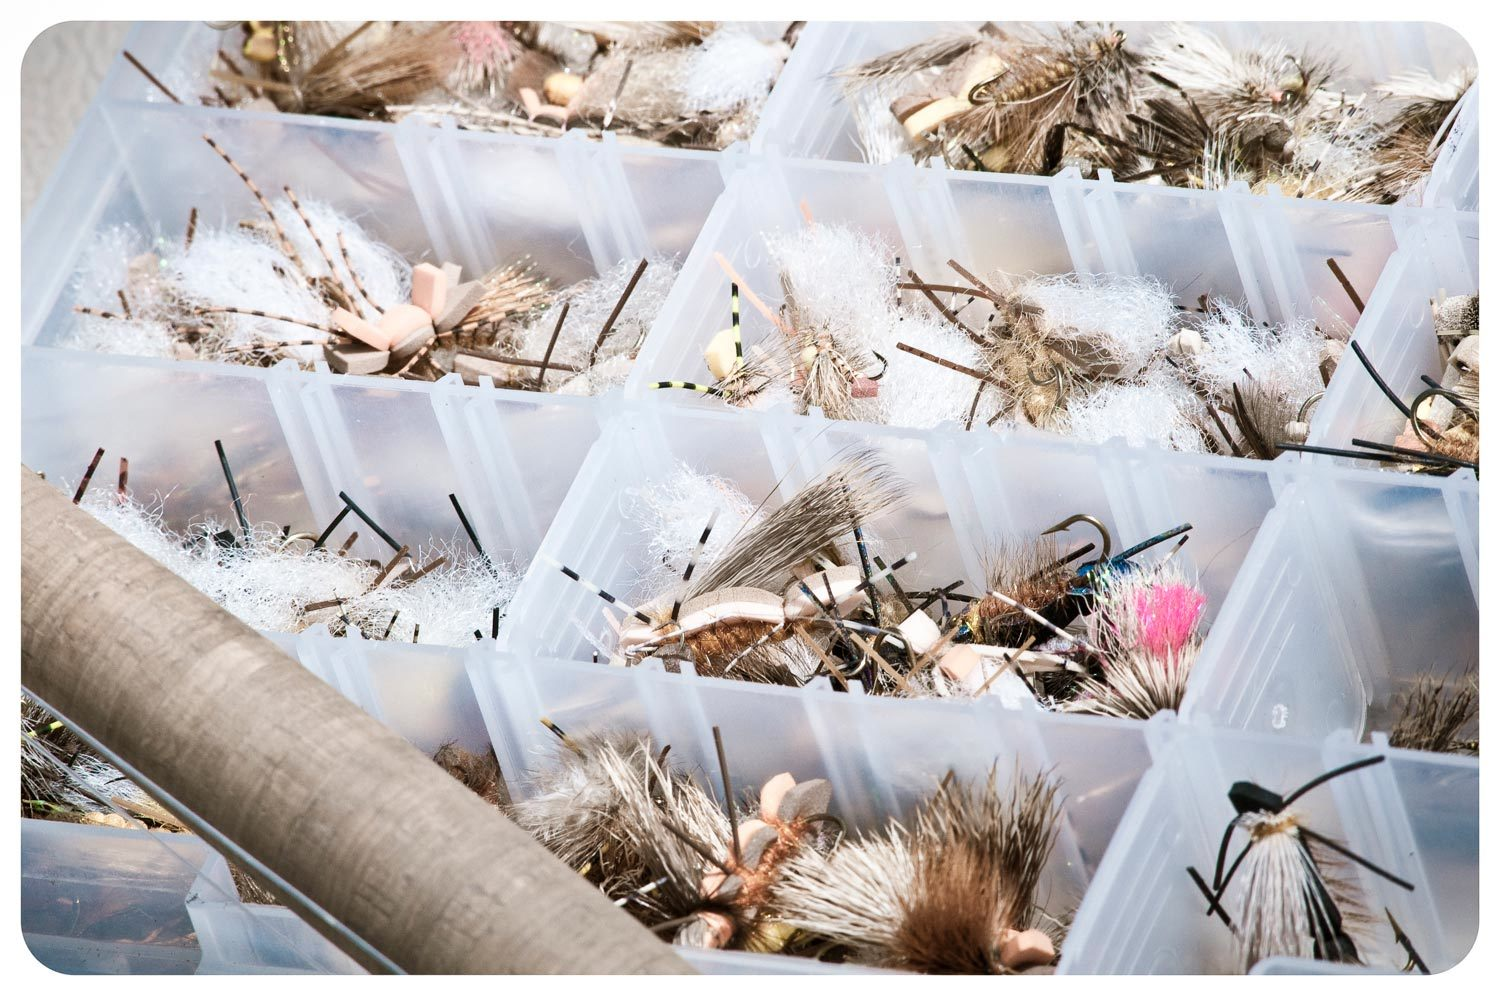 Use Old Plano Boxes For Bulk Fly Storage